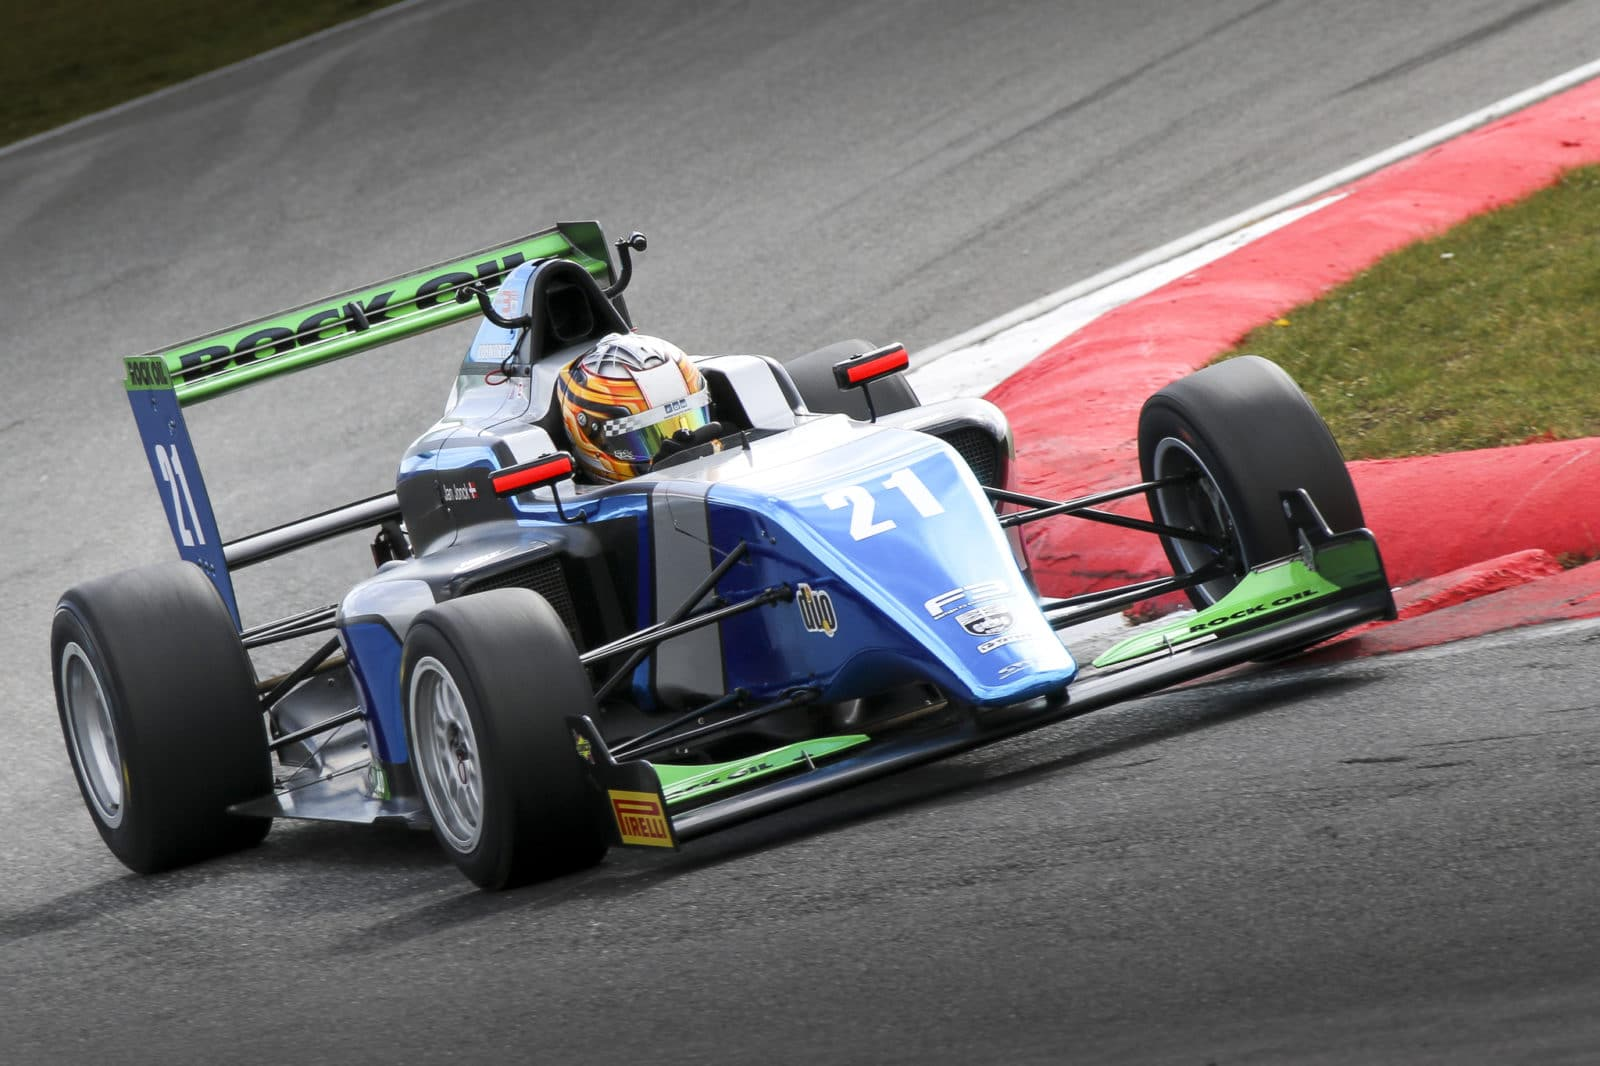 Jan Jønck, BRDC Formula 3, Brands Hatch 2016. Foto: Jan Jønck Presse